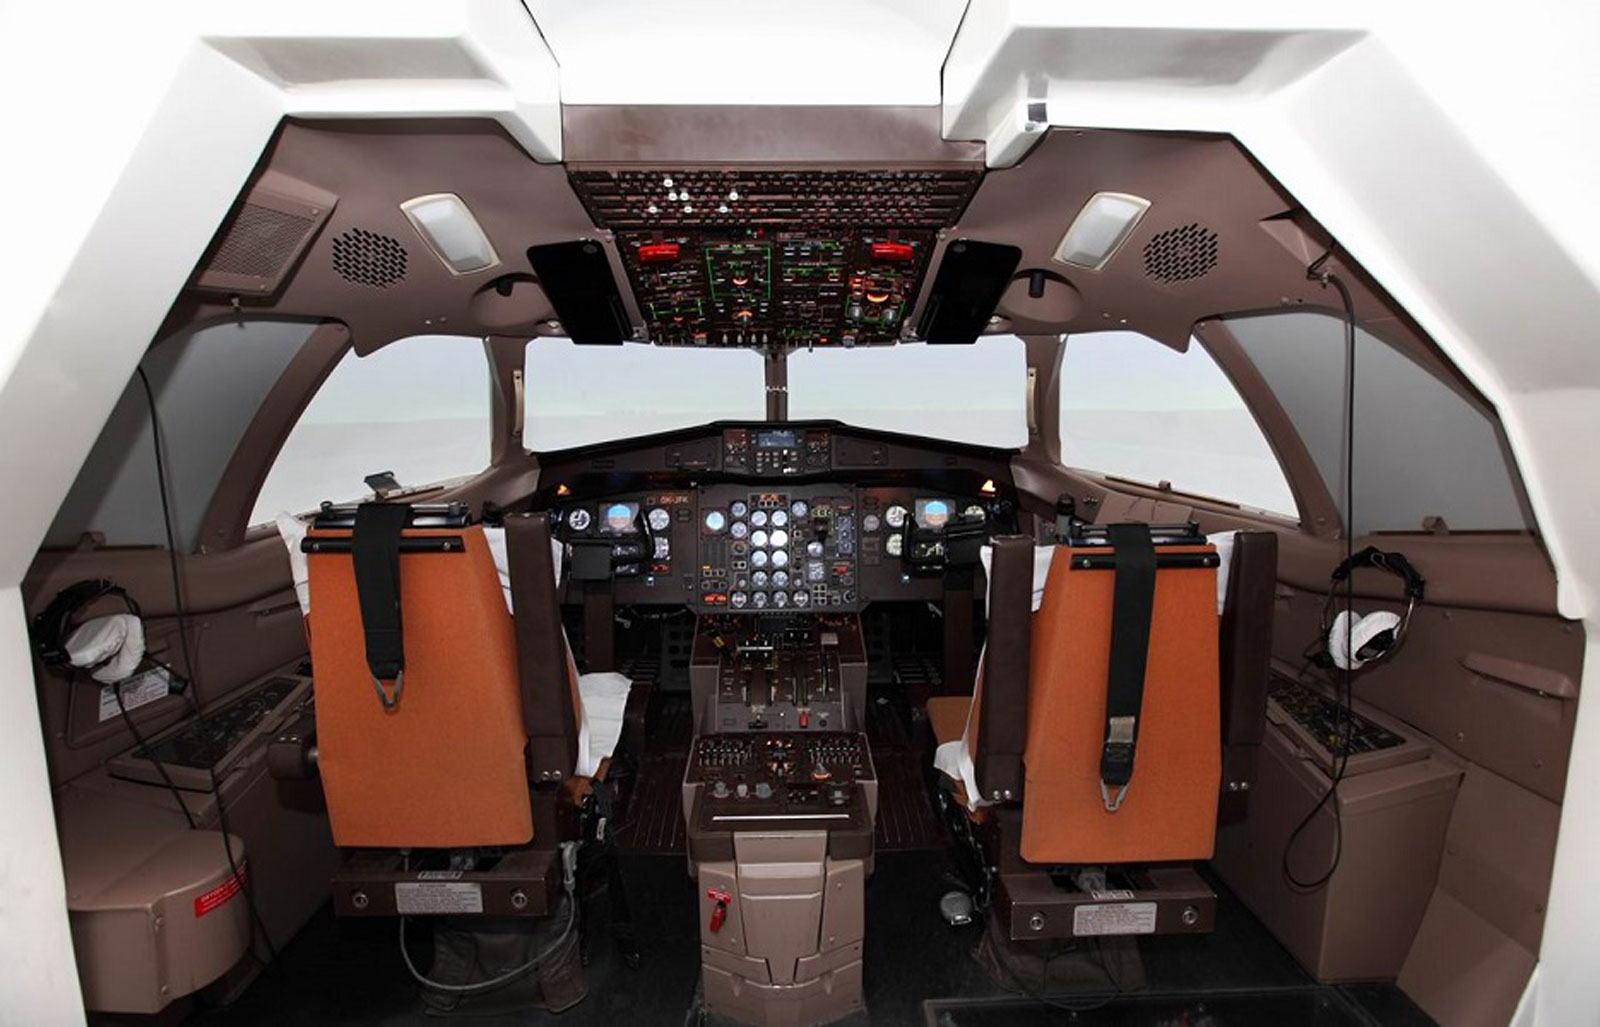 FTD ATR42/72 (Flight Training Device)